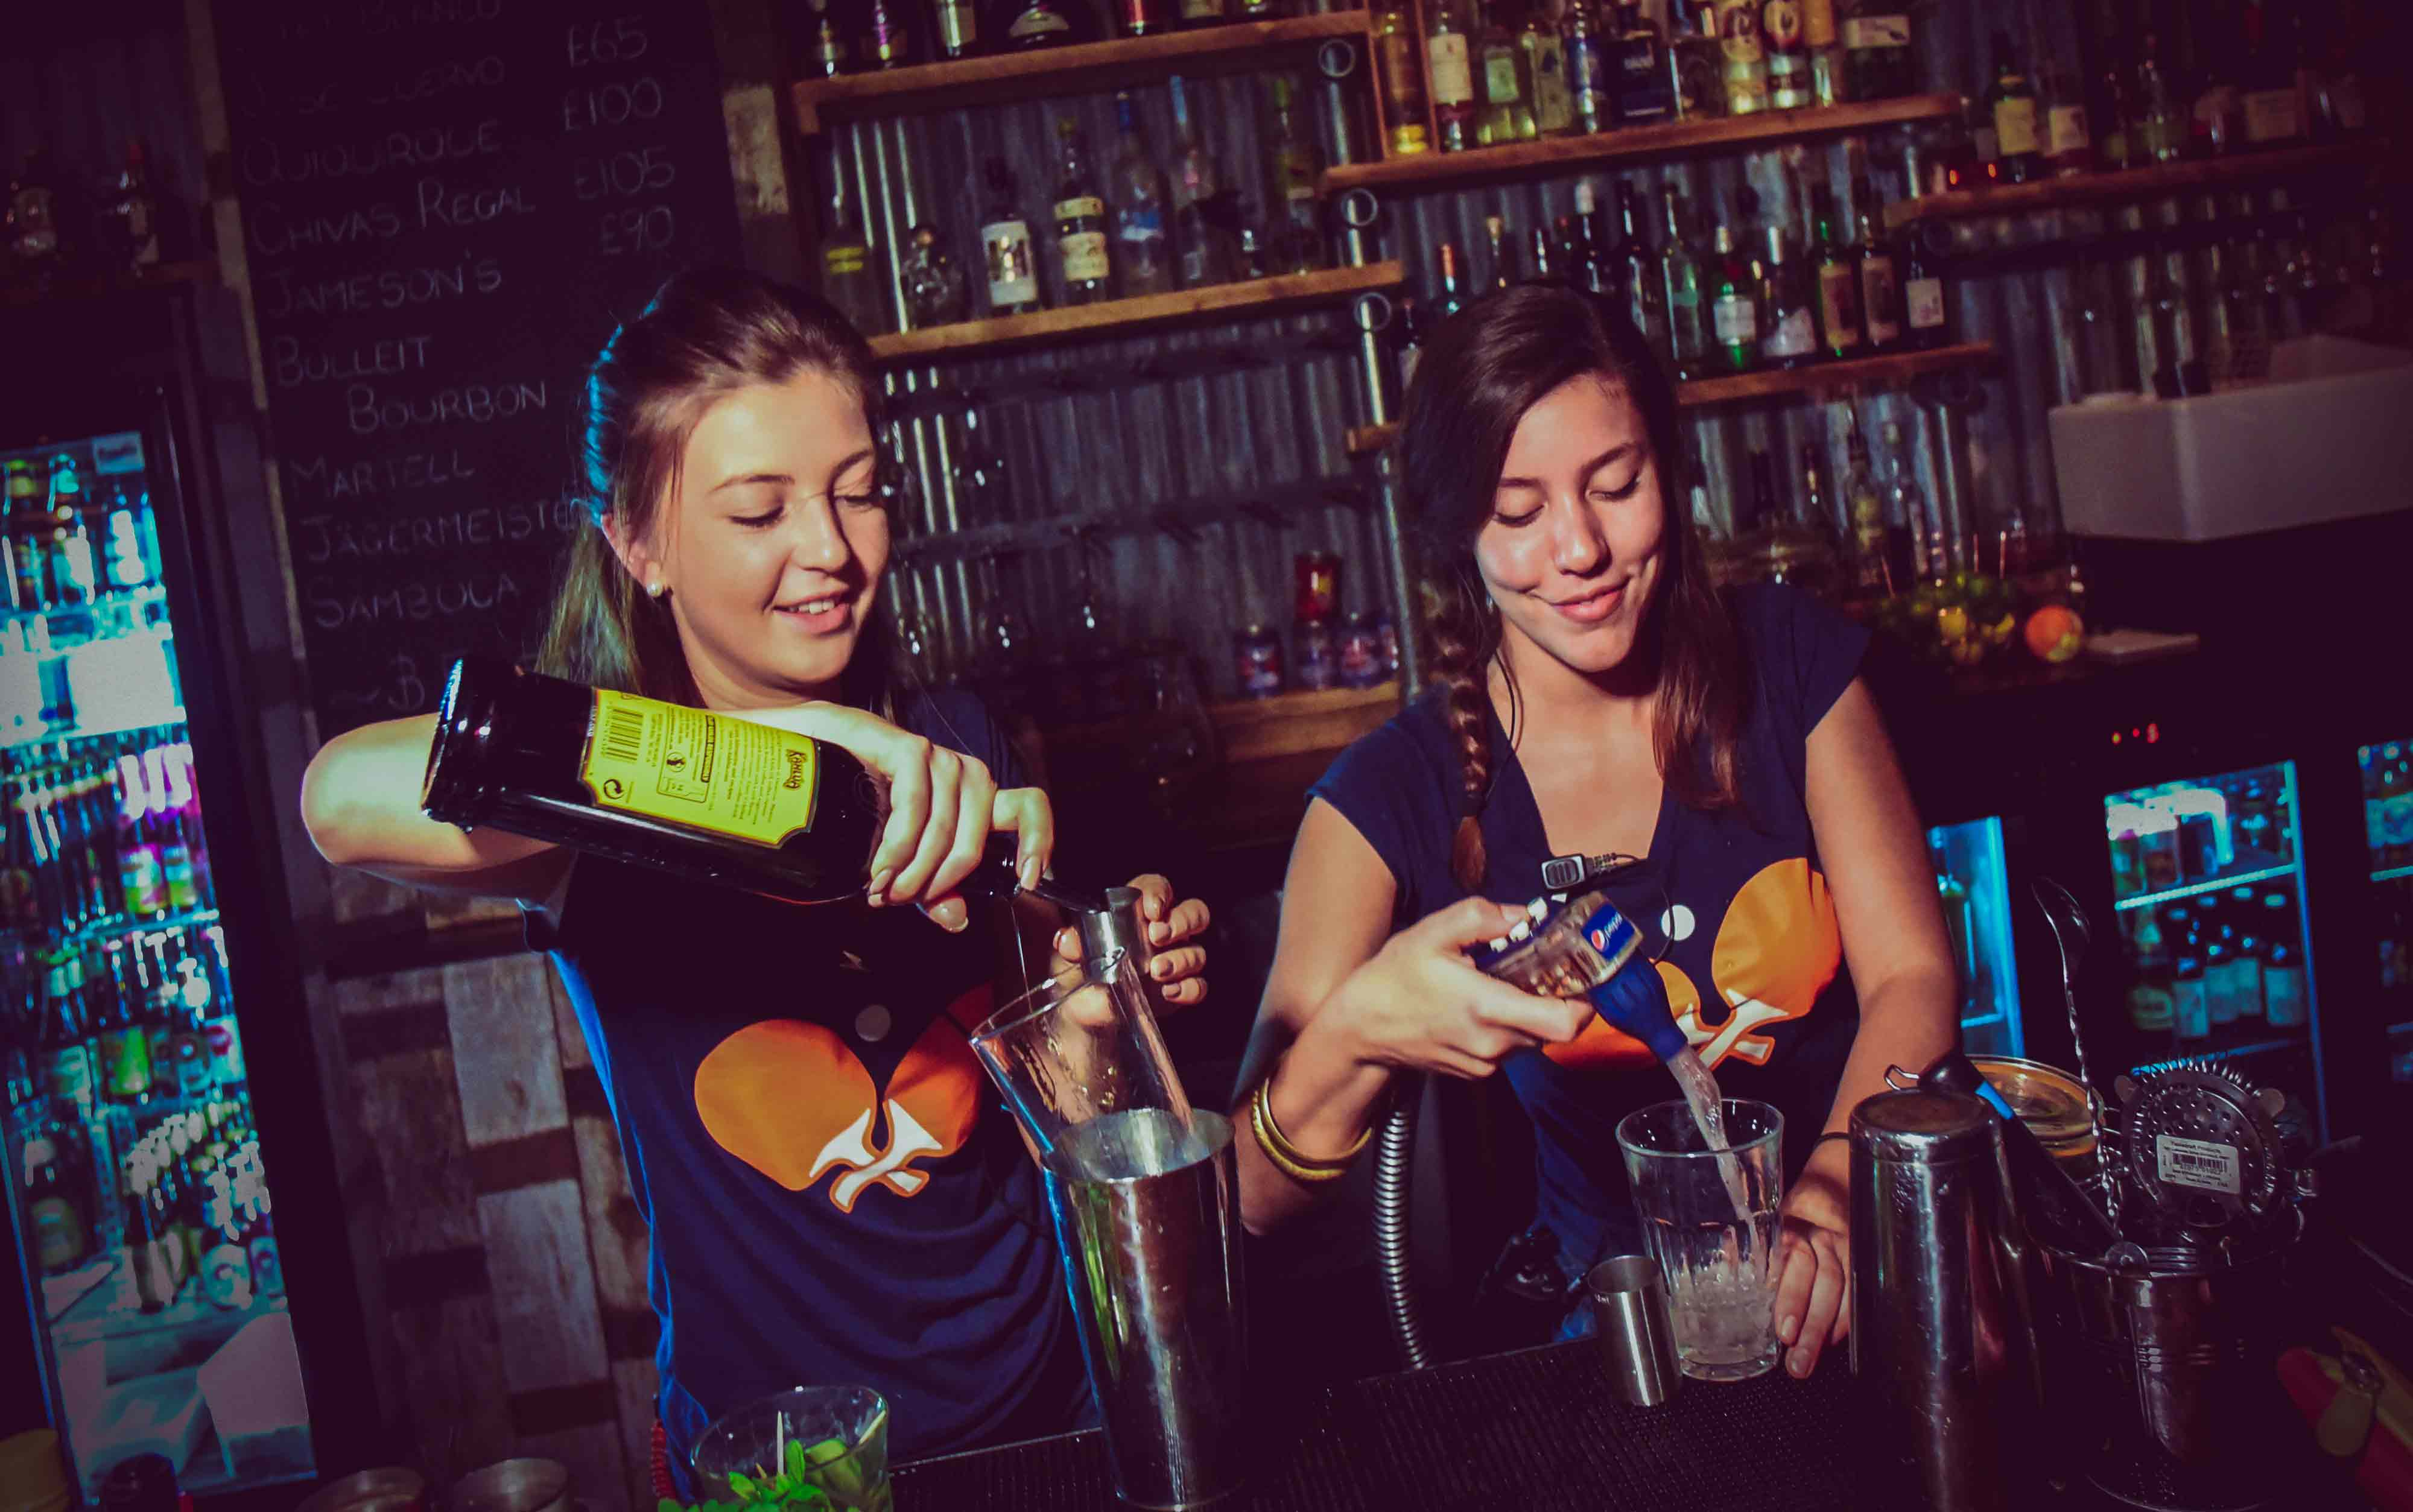 Join the team - Cocktail bartenders